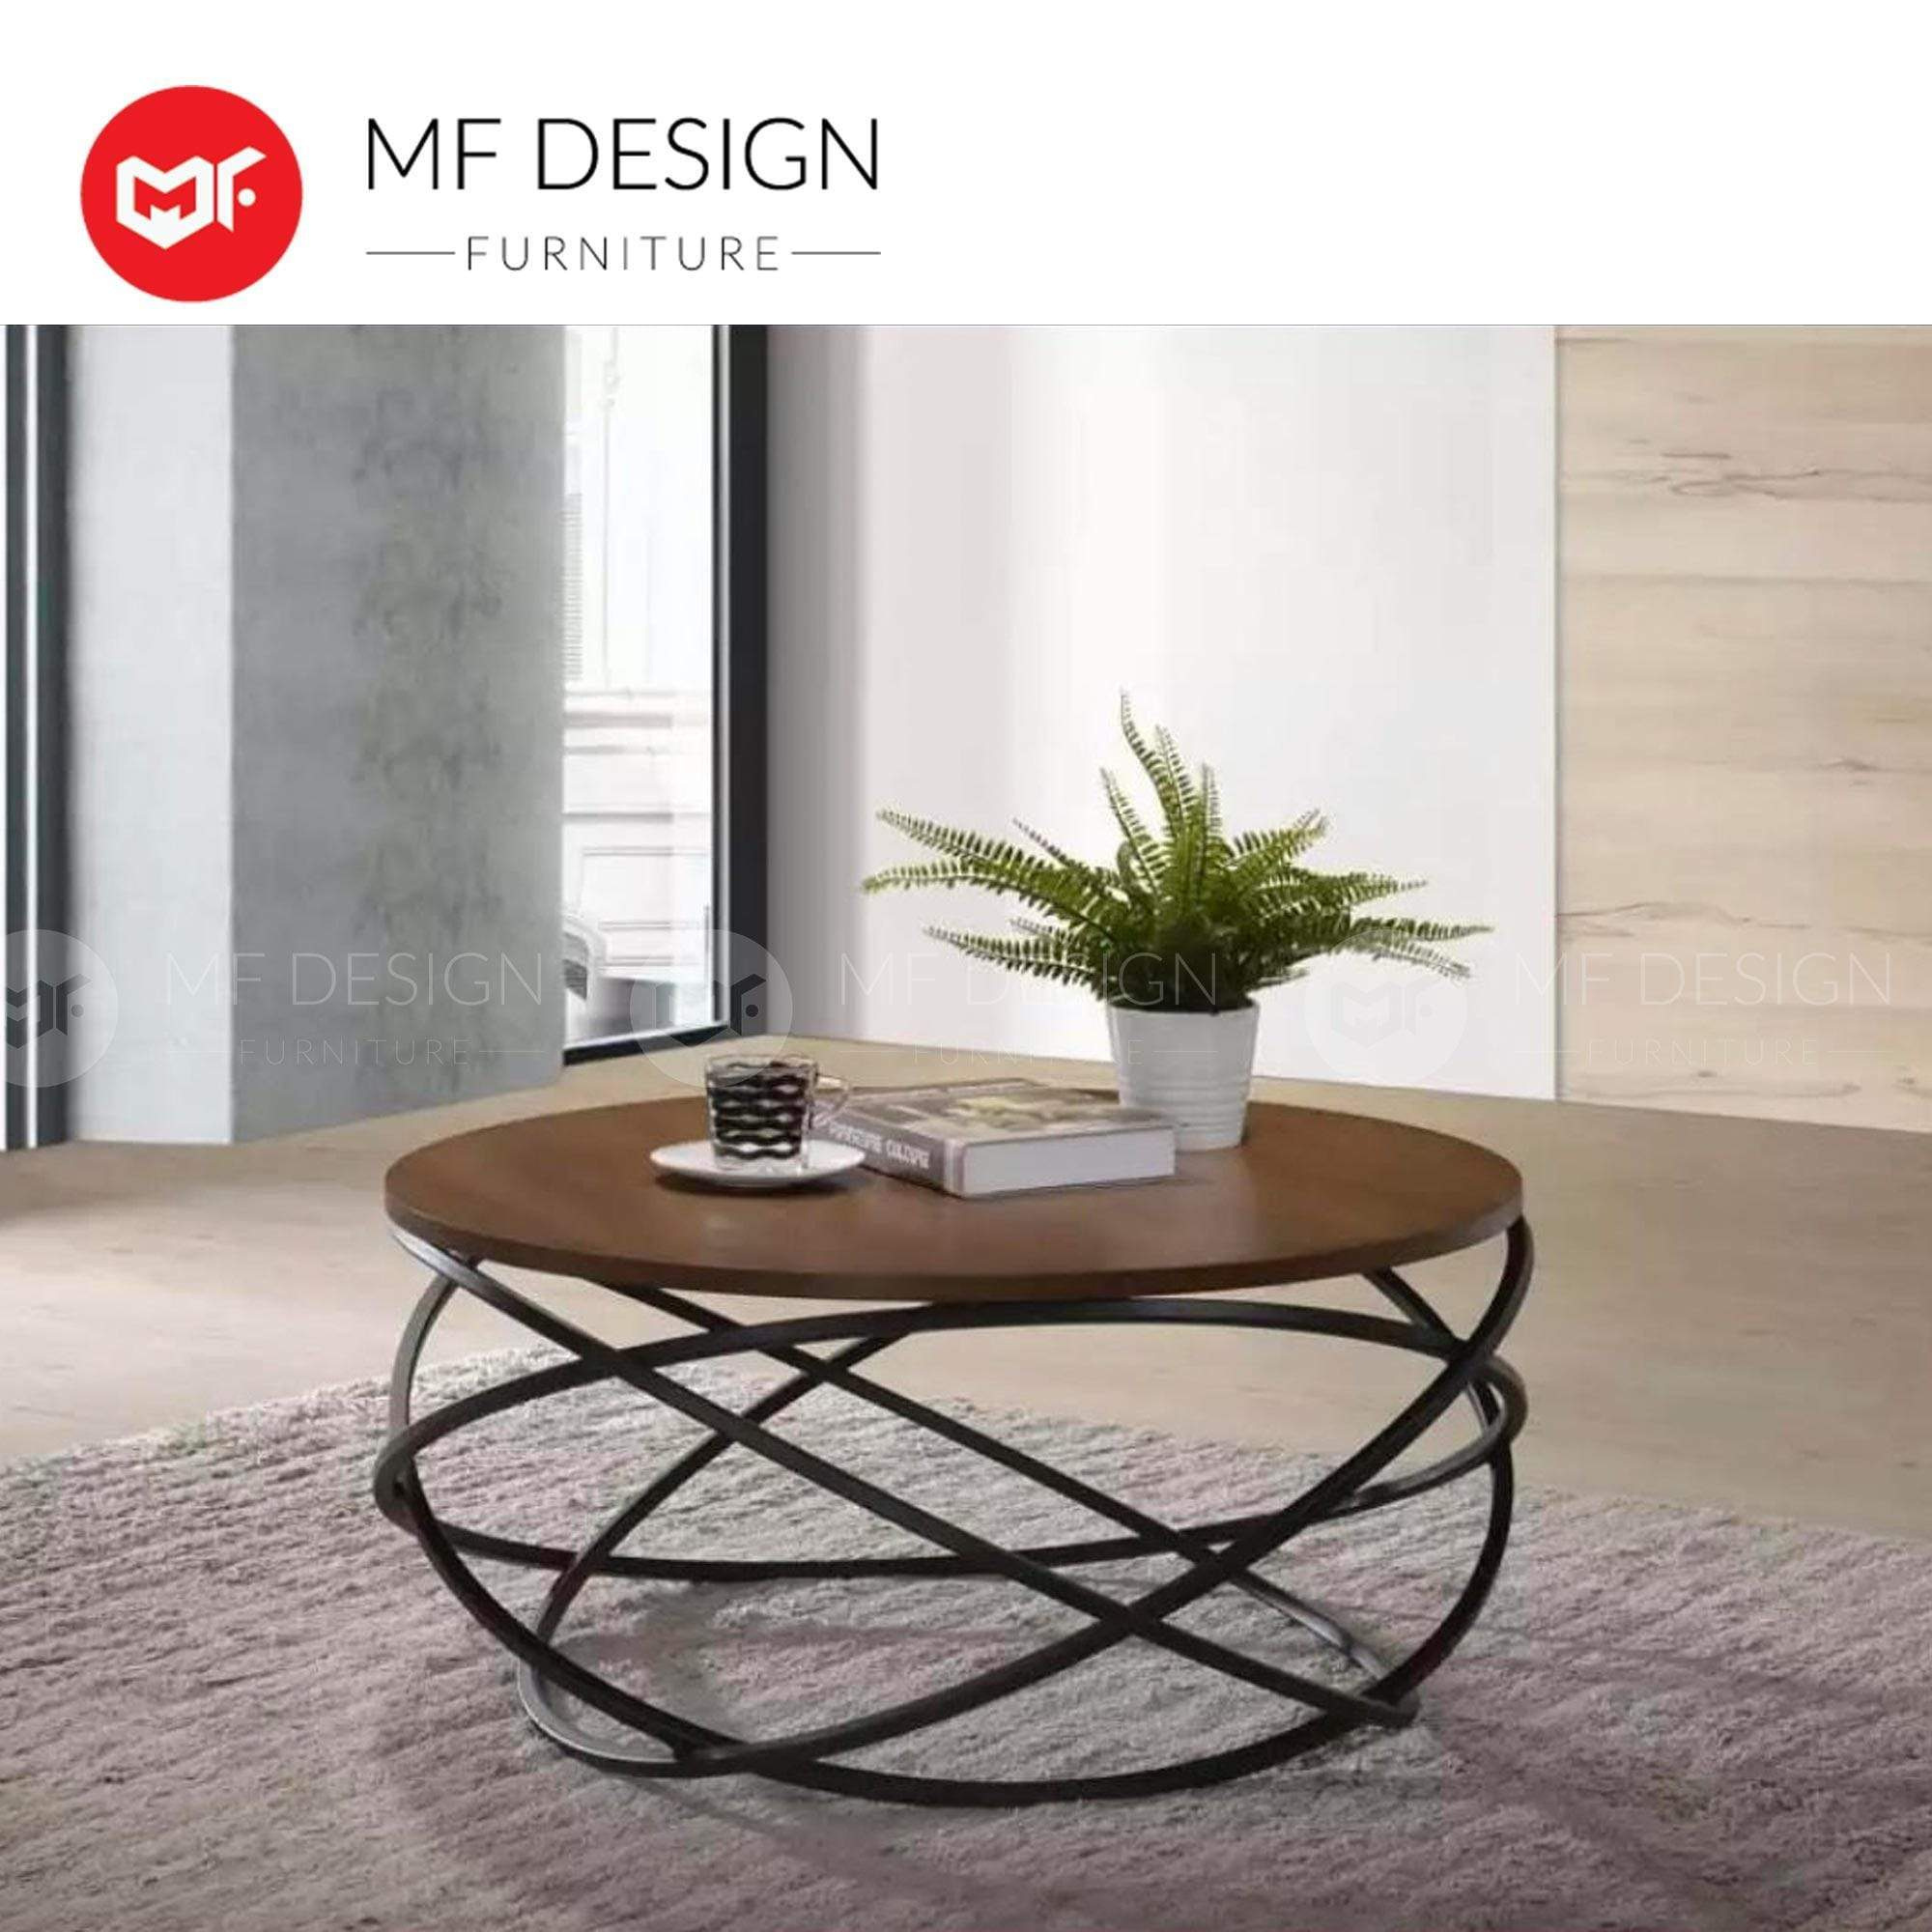 SHIN AIK Coffee table MF DESIGN RING METAL BASE COFFEE TABLE